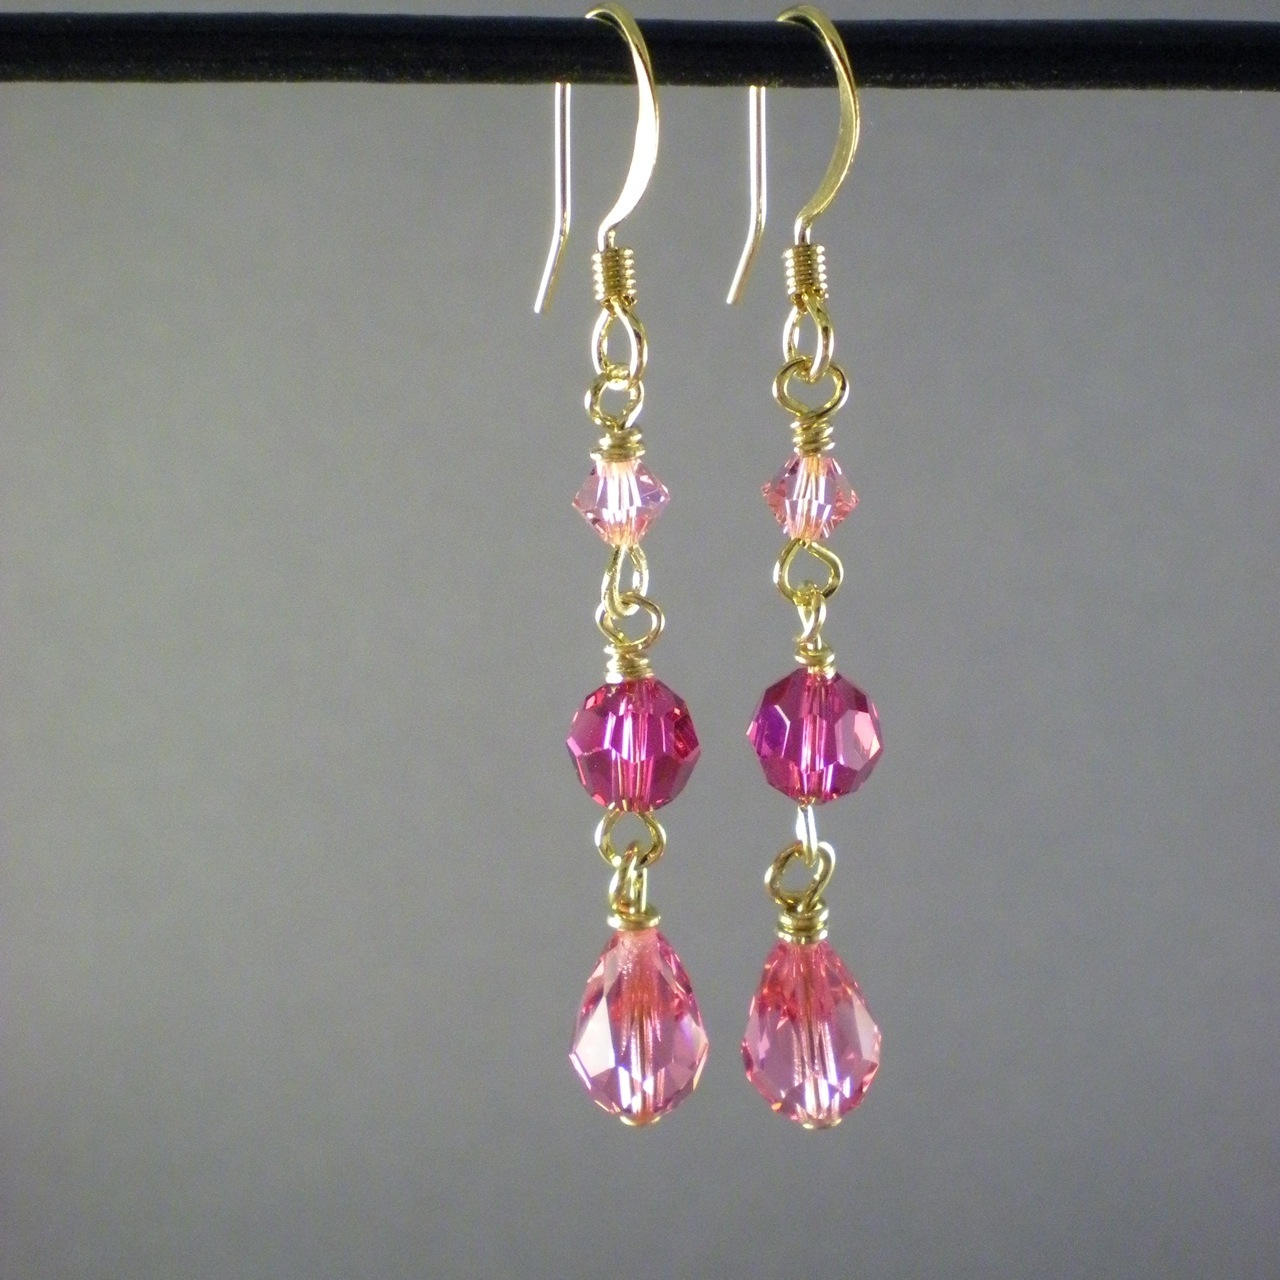 Jewelry, Bridesmaids, Bridesmaids Dresses, Fashion, pink, red, gold, Earrings, Bride, Bridesmaid, Bridal, Rose, Crystal, Swarovski, Teardrop, Dana saylor designs, Fuchsia, Briolette, Wire